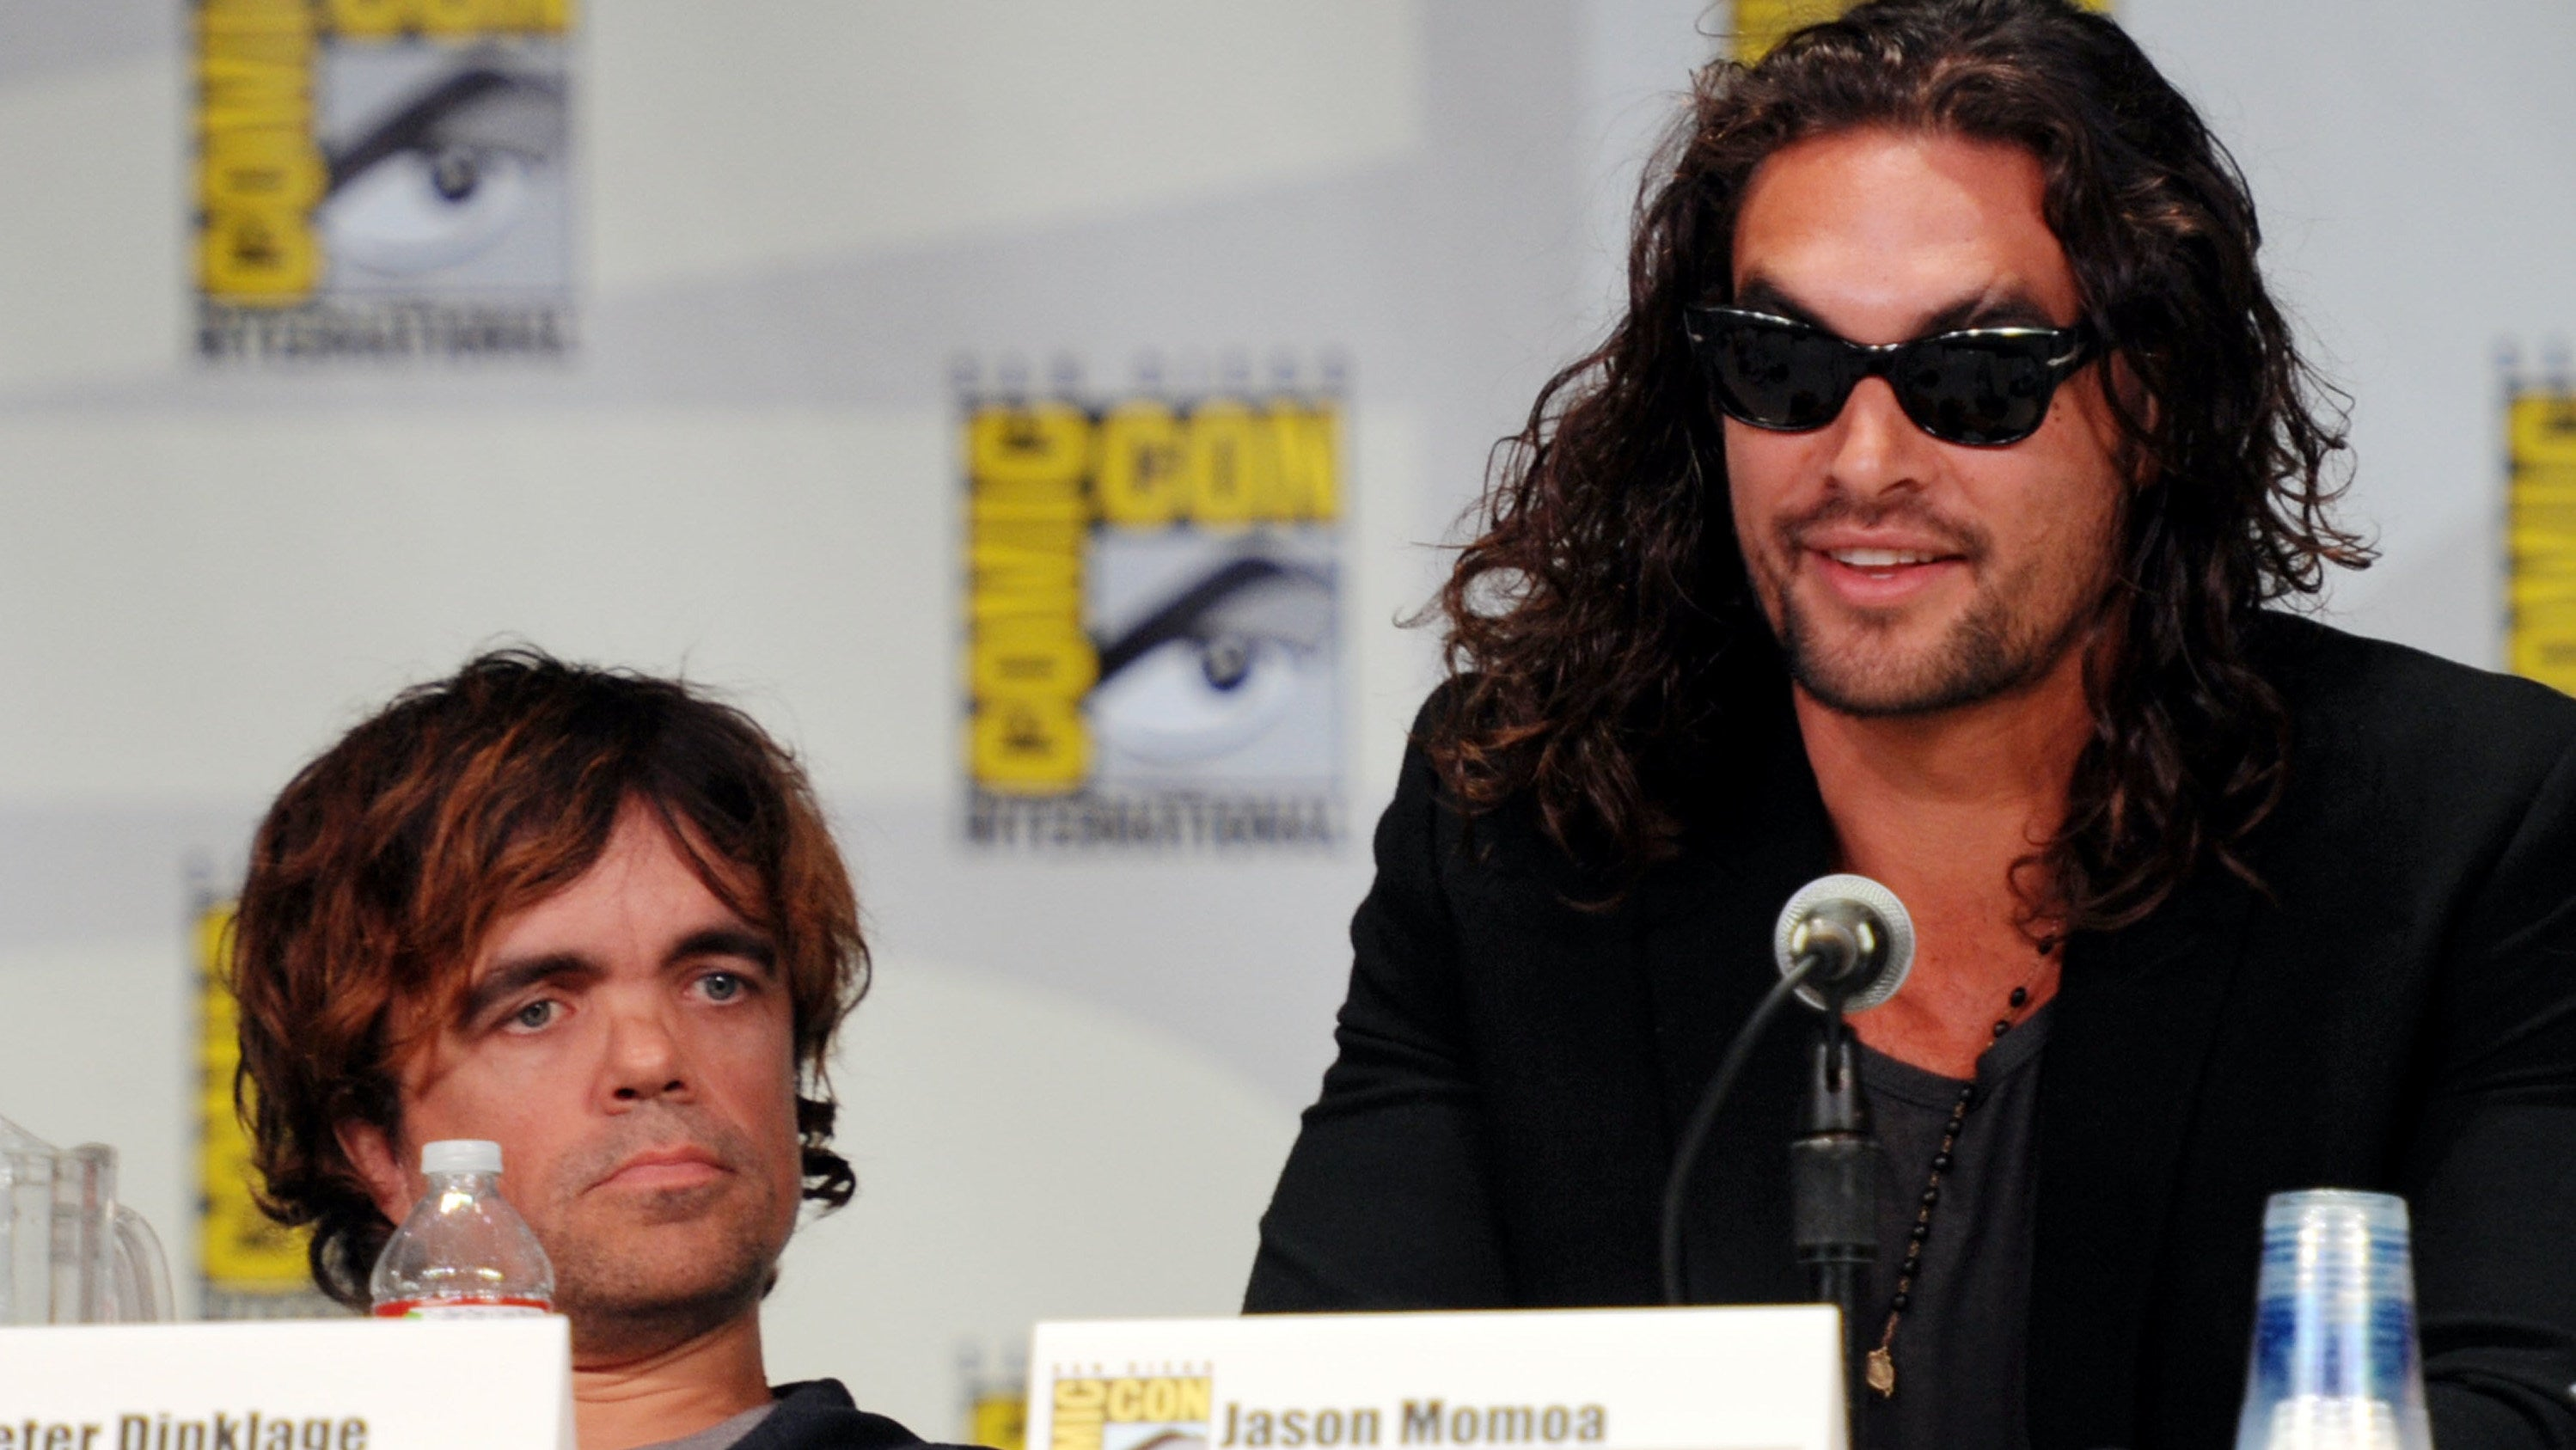 Peter Dinklage And Jason Momoa Are Teaming Up For A Vampire-Themed Buddy Comedy